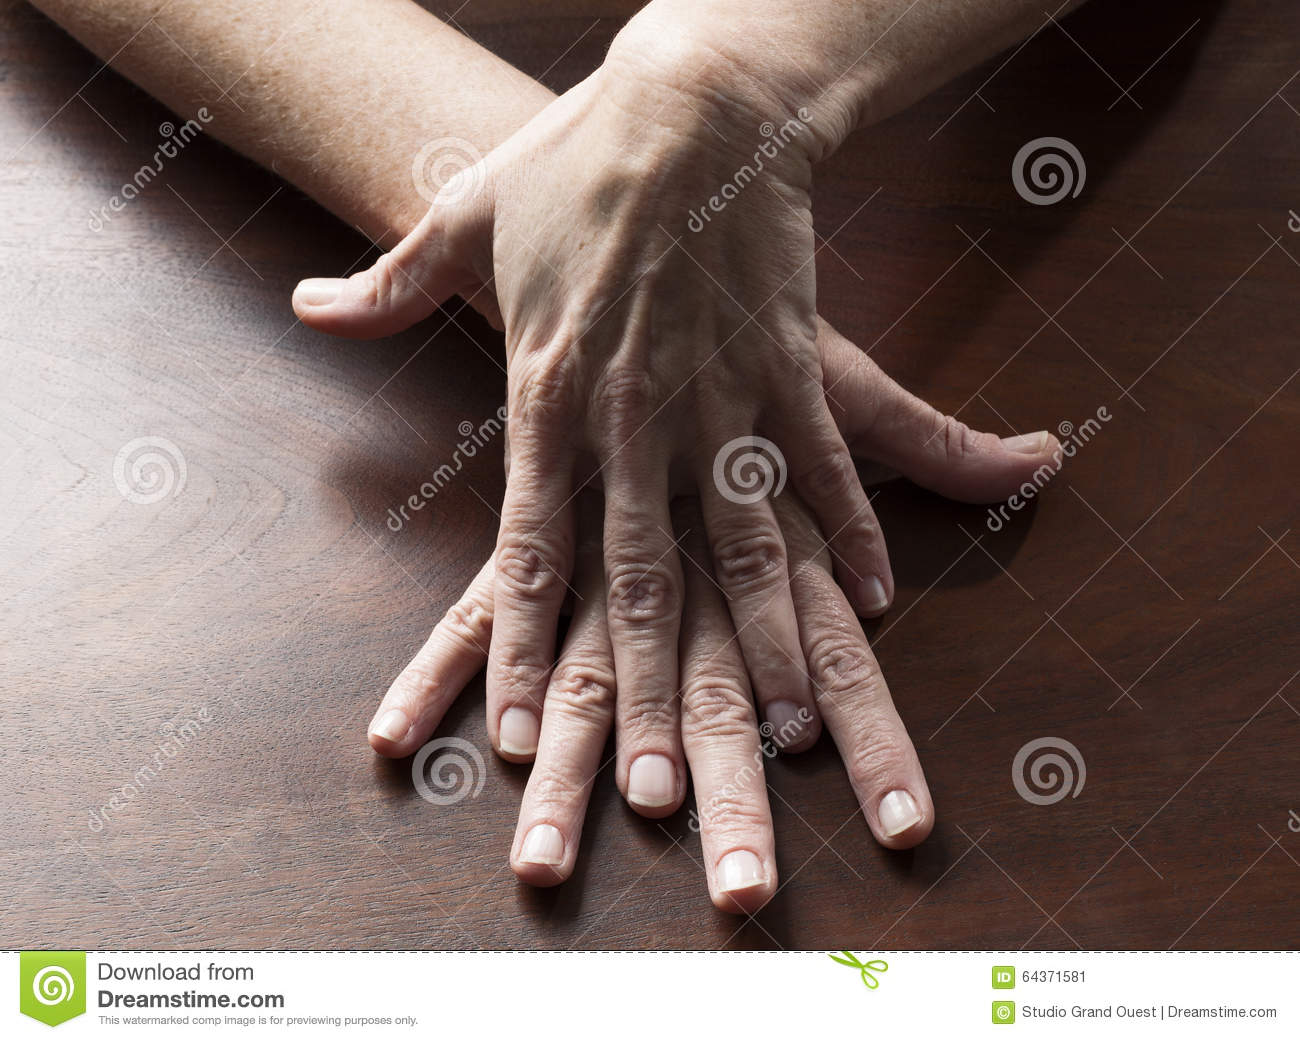 Sensual female hands touching together for confusion